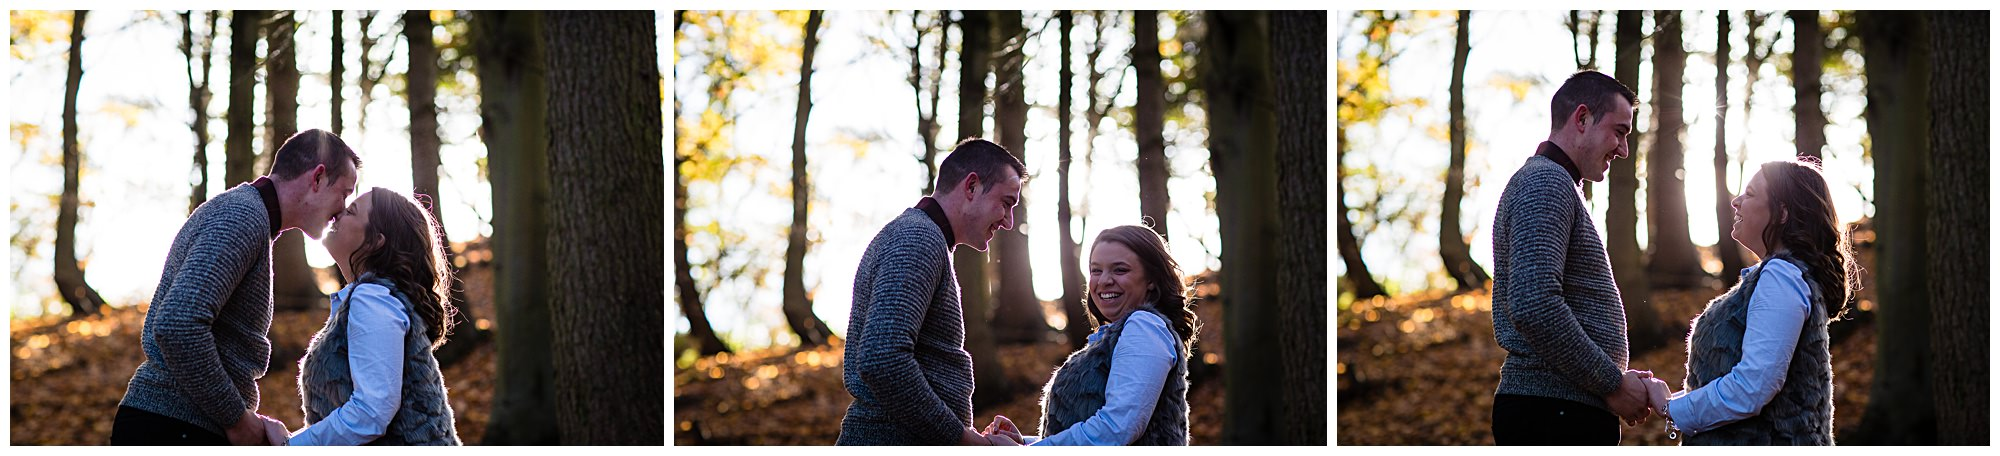 madly in love couple laughing at each other backlit from the sunshine - charlotte giddings photography